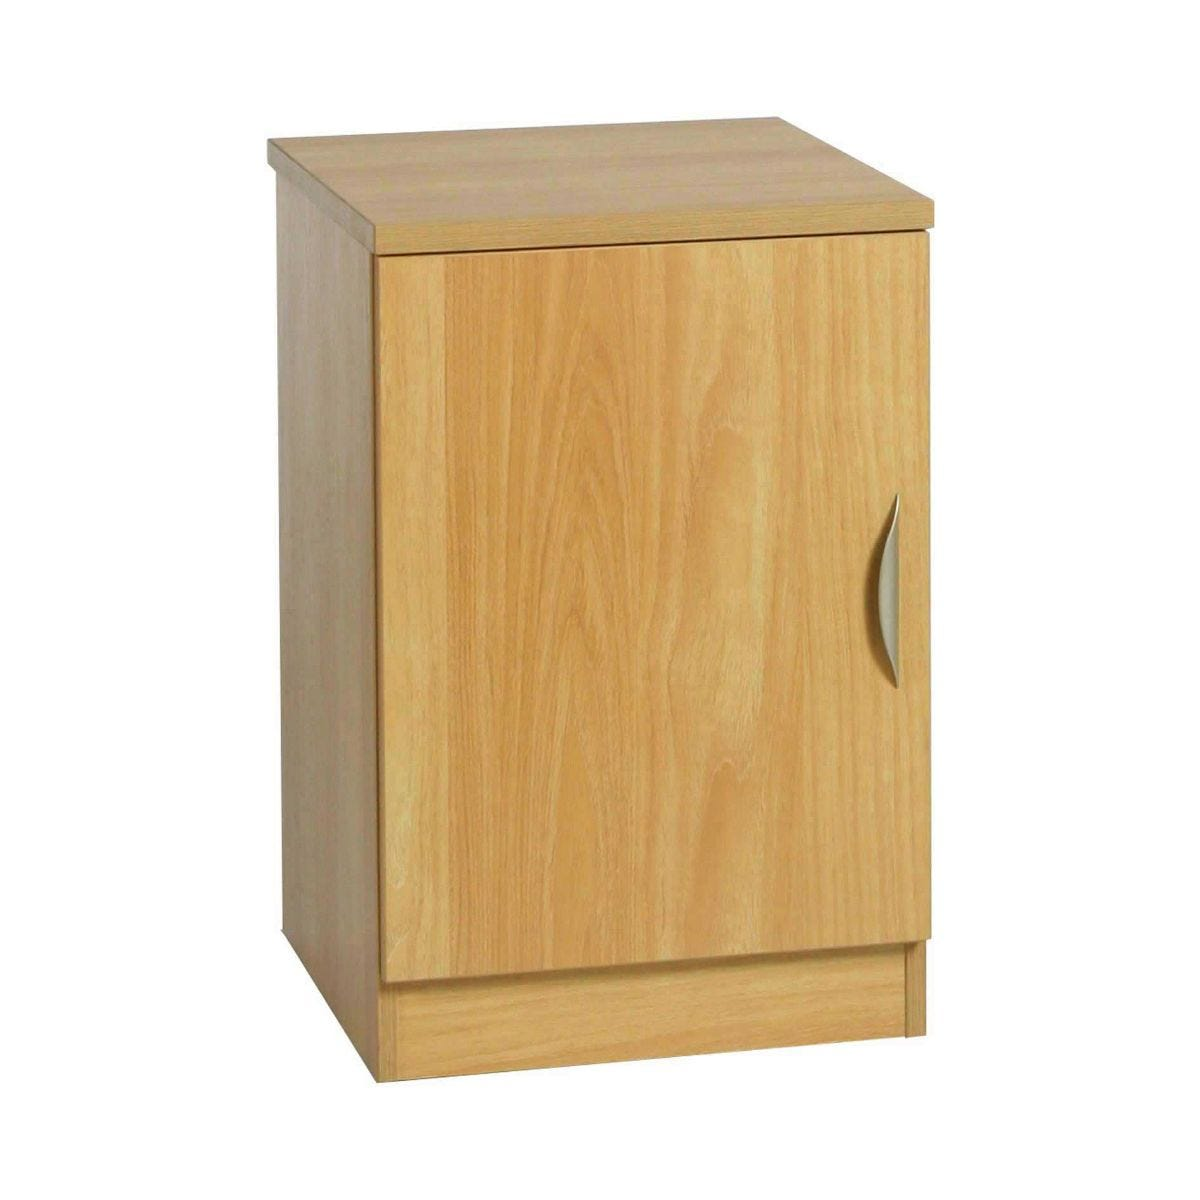 R White Single Cupboard B-C48 H728xW479xD540mm, Classic Oak